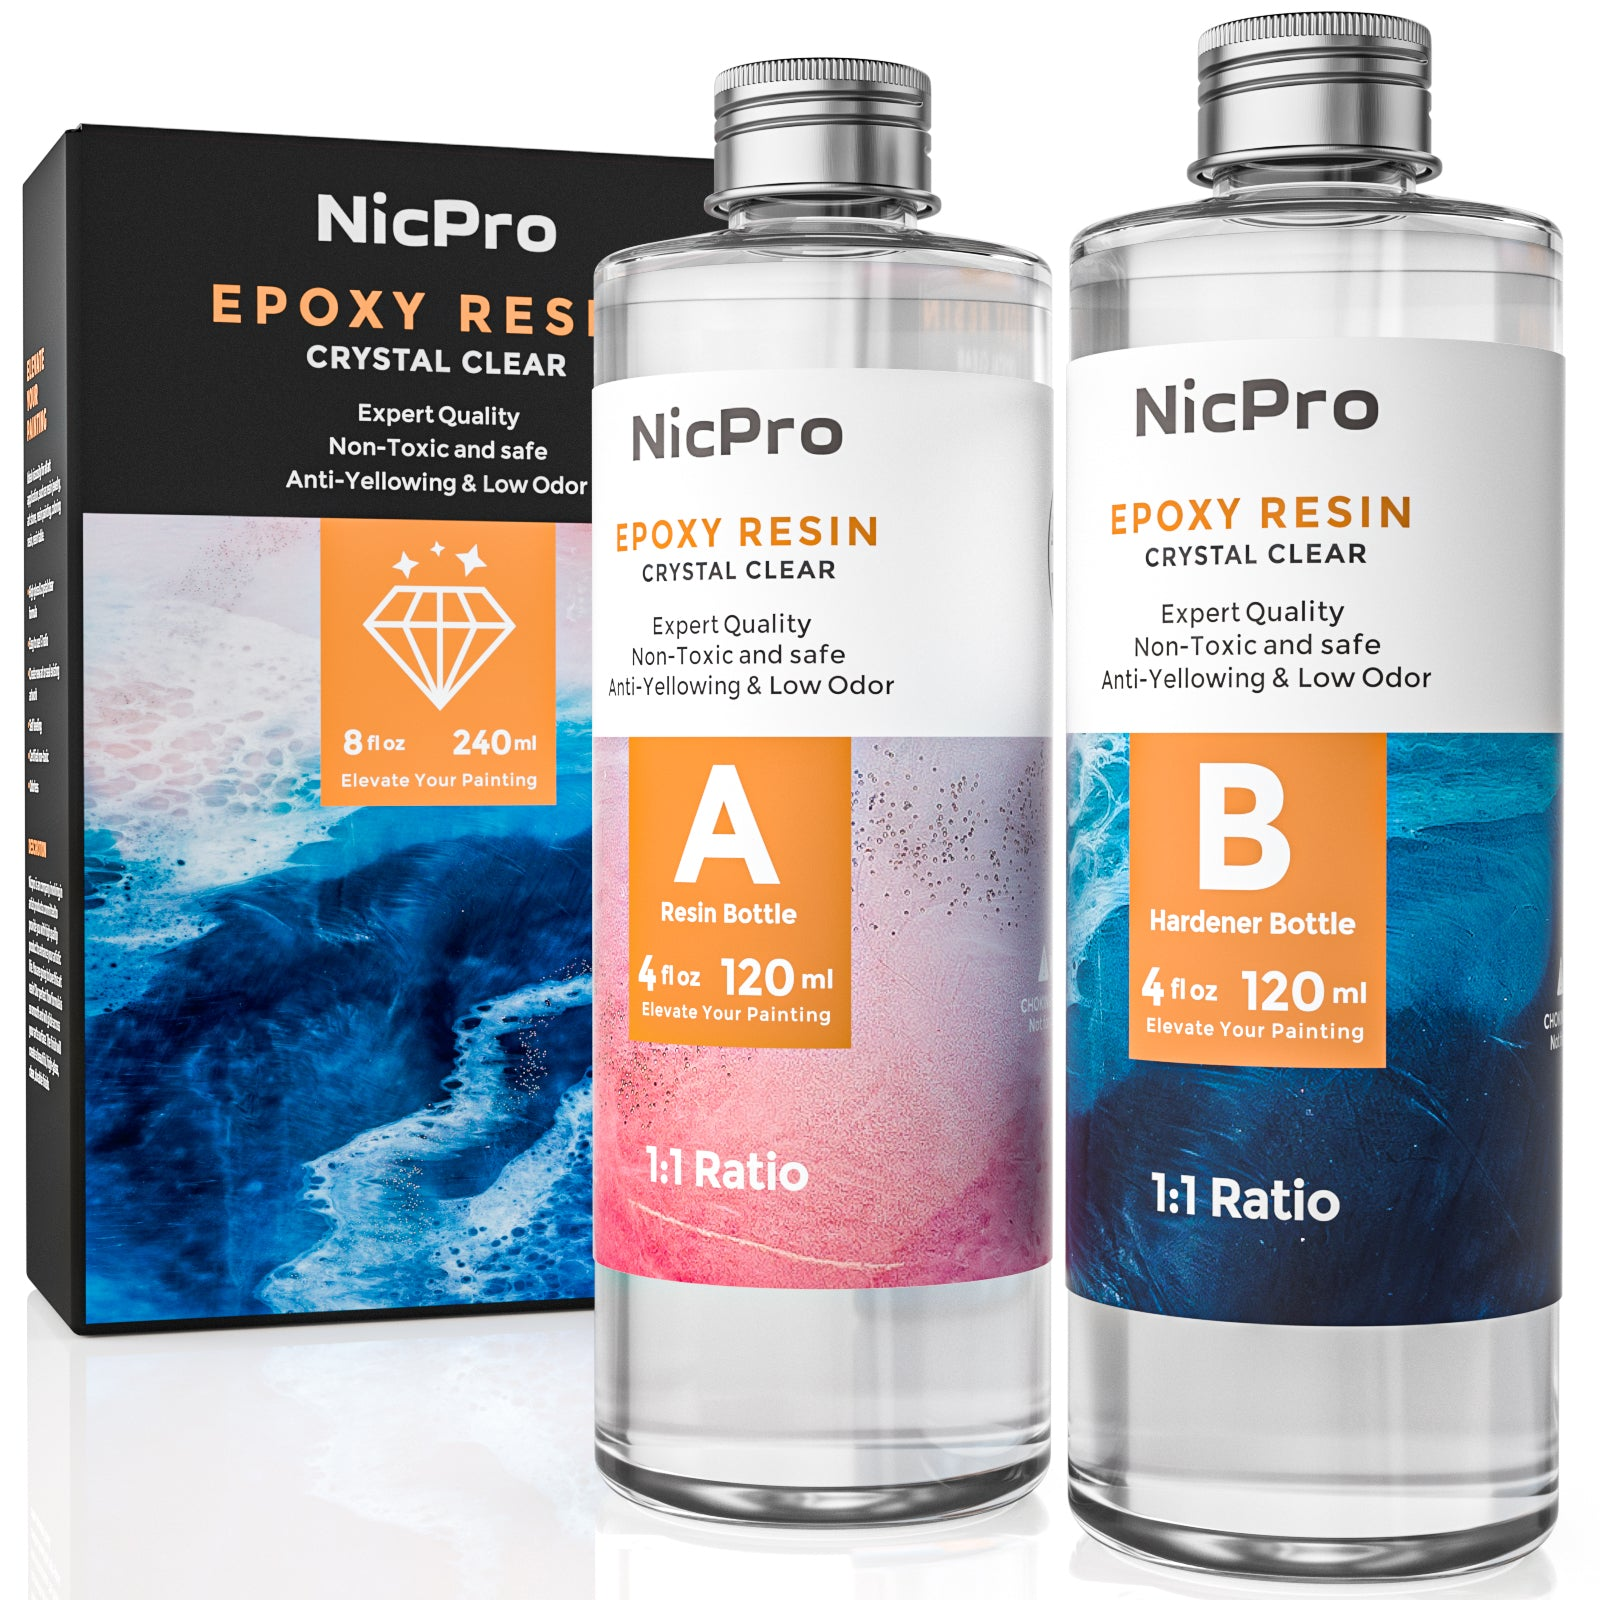 Nicpro Crystal Clear Epoxy Resin Kit 8 Ounce, DIY Starter Art Resin for Craft, Canvas Painting, Molds Pigment Jewelry Making, Resin Coating and Casting